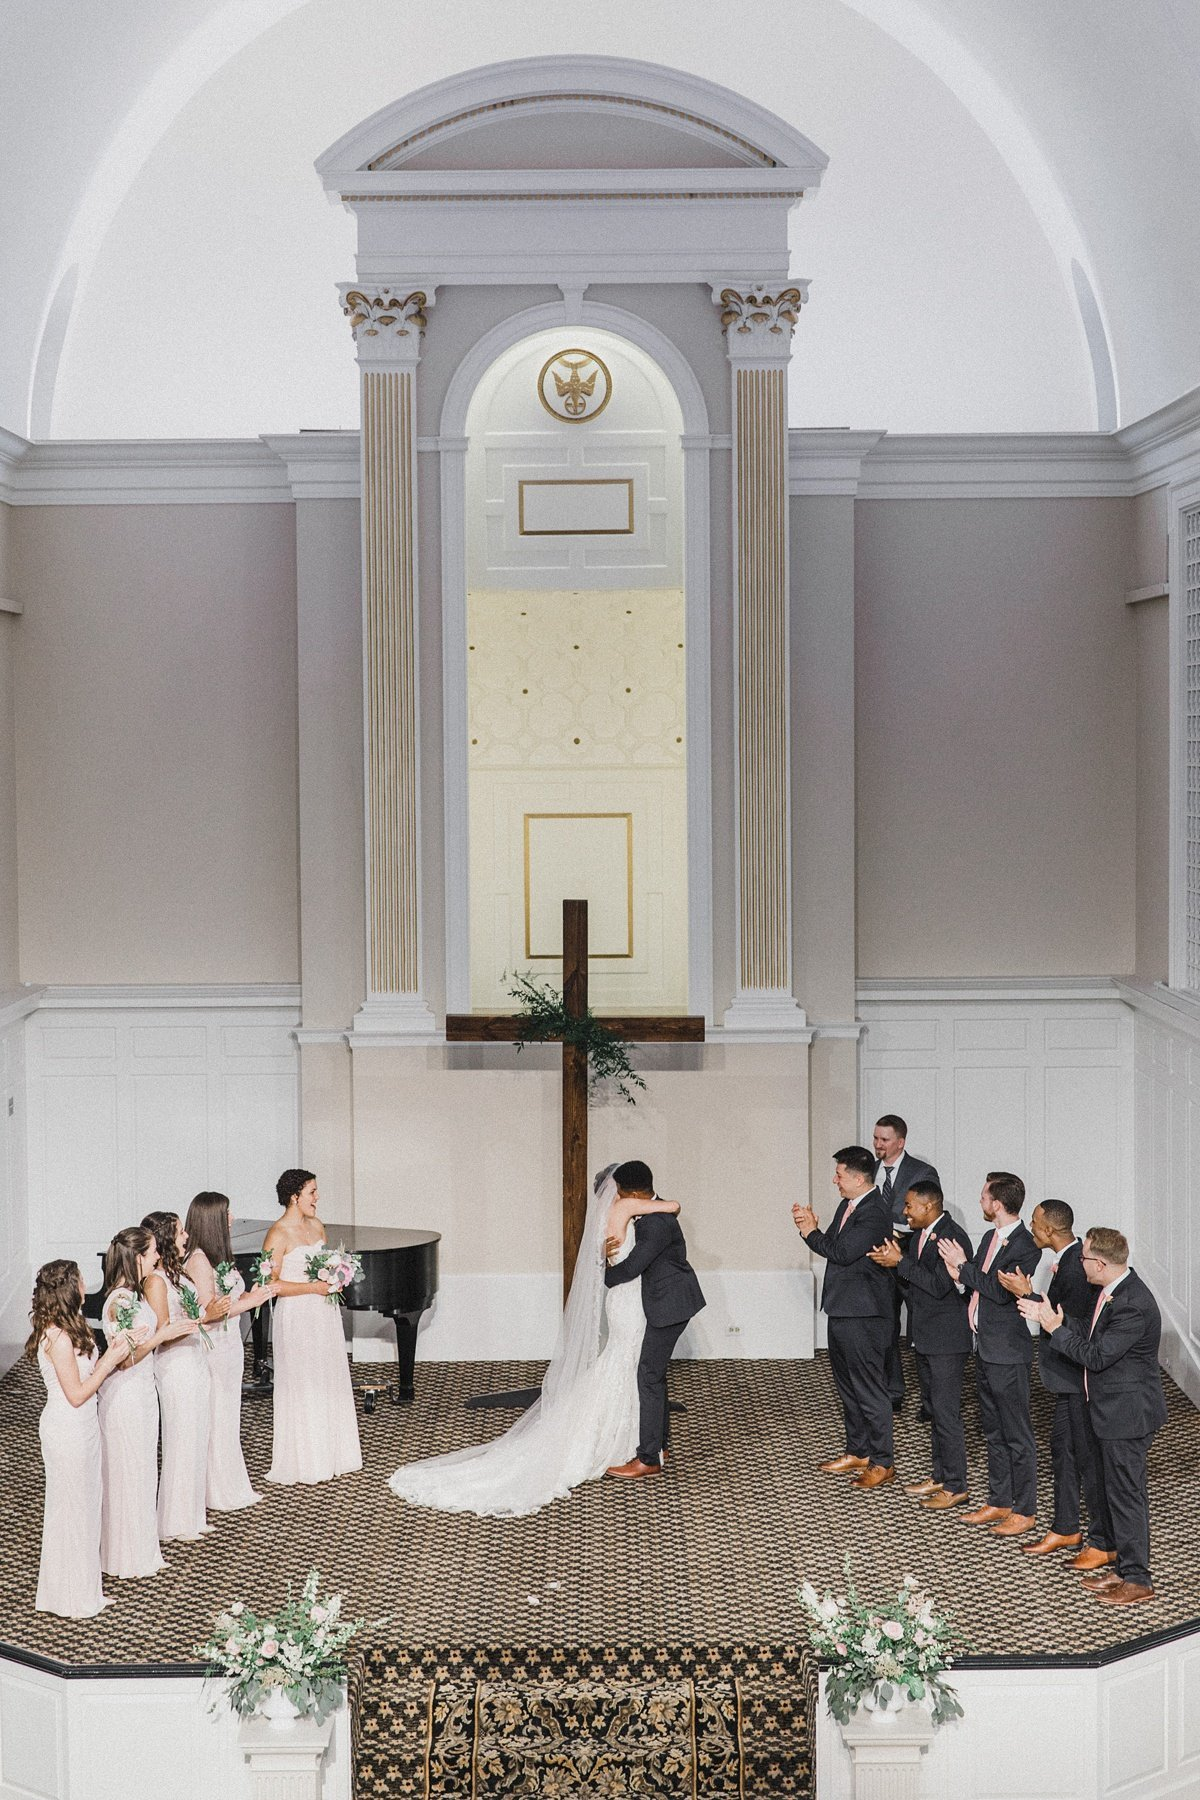 syri-sara-old-pate-chapel-wedding_0004